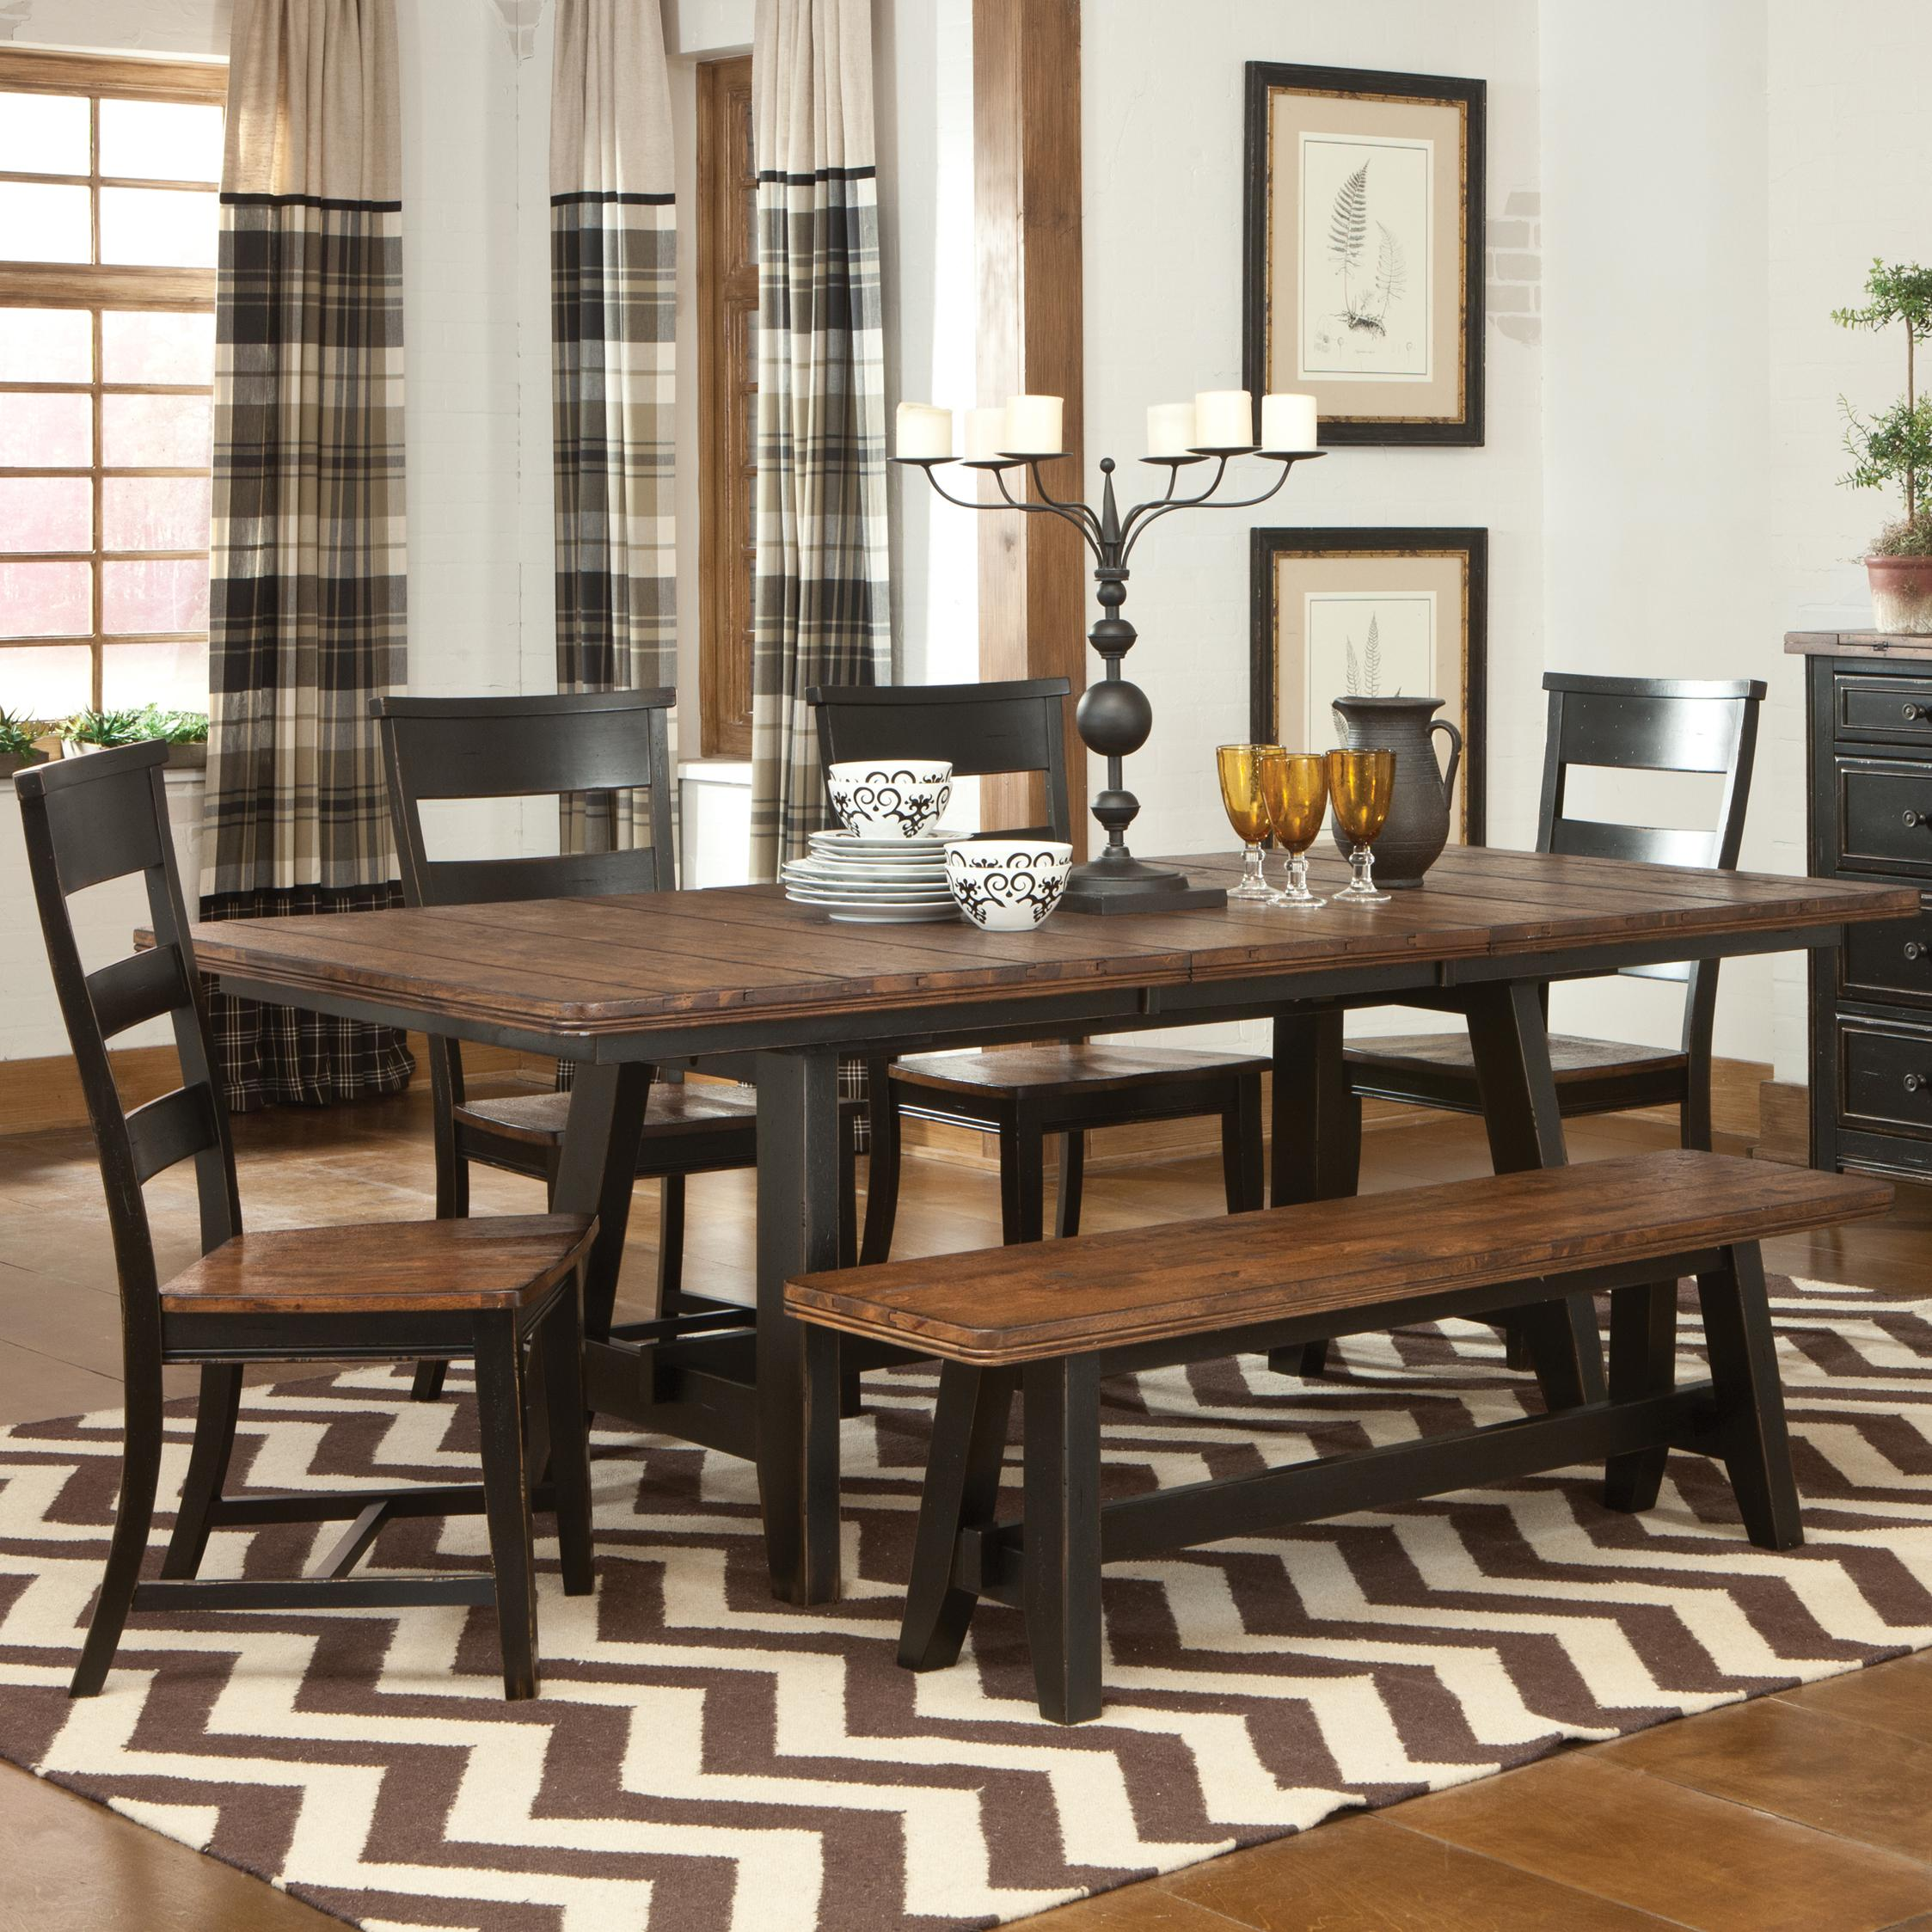 Most Comfortable Dining Chairs For Your Longer Dining